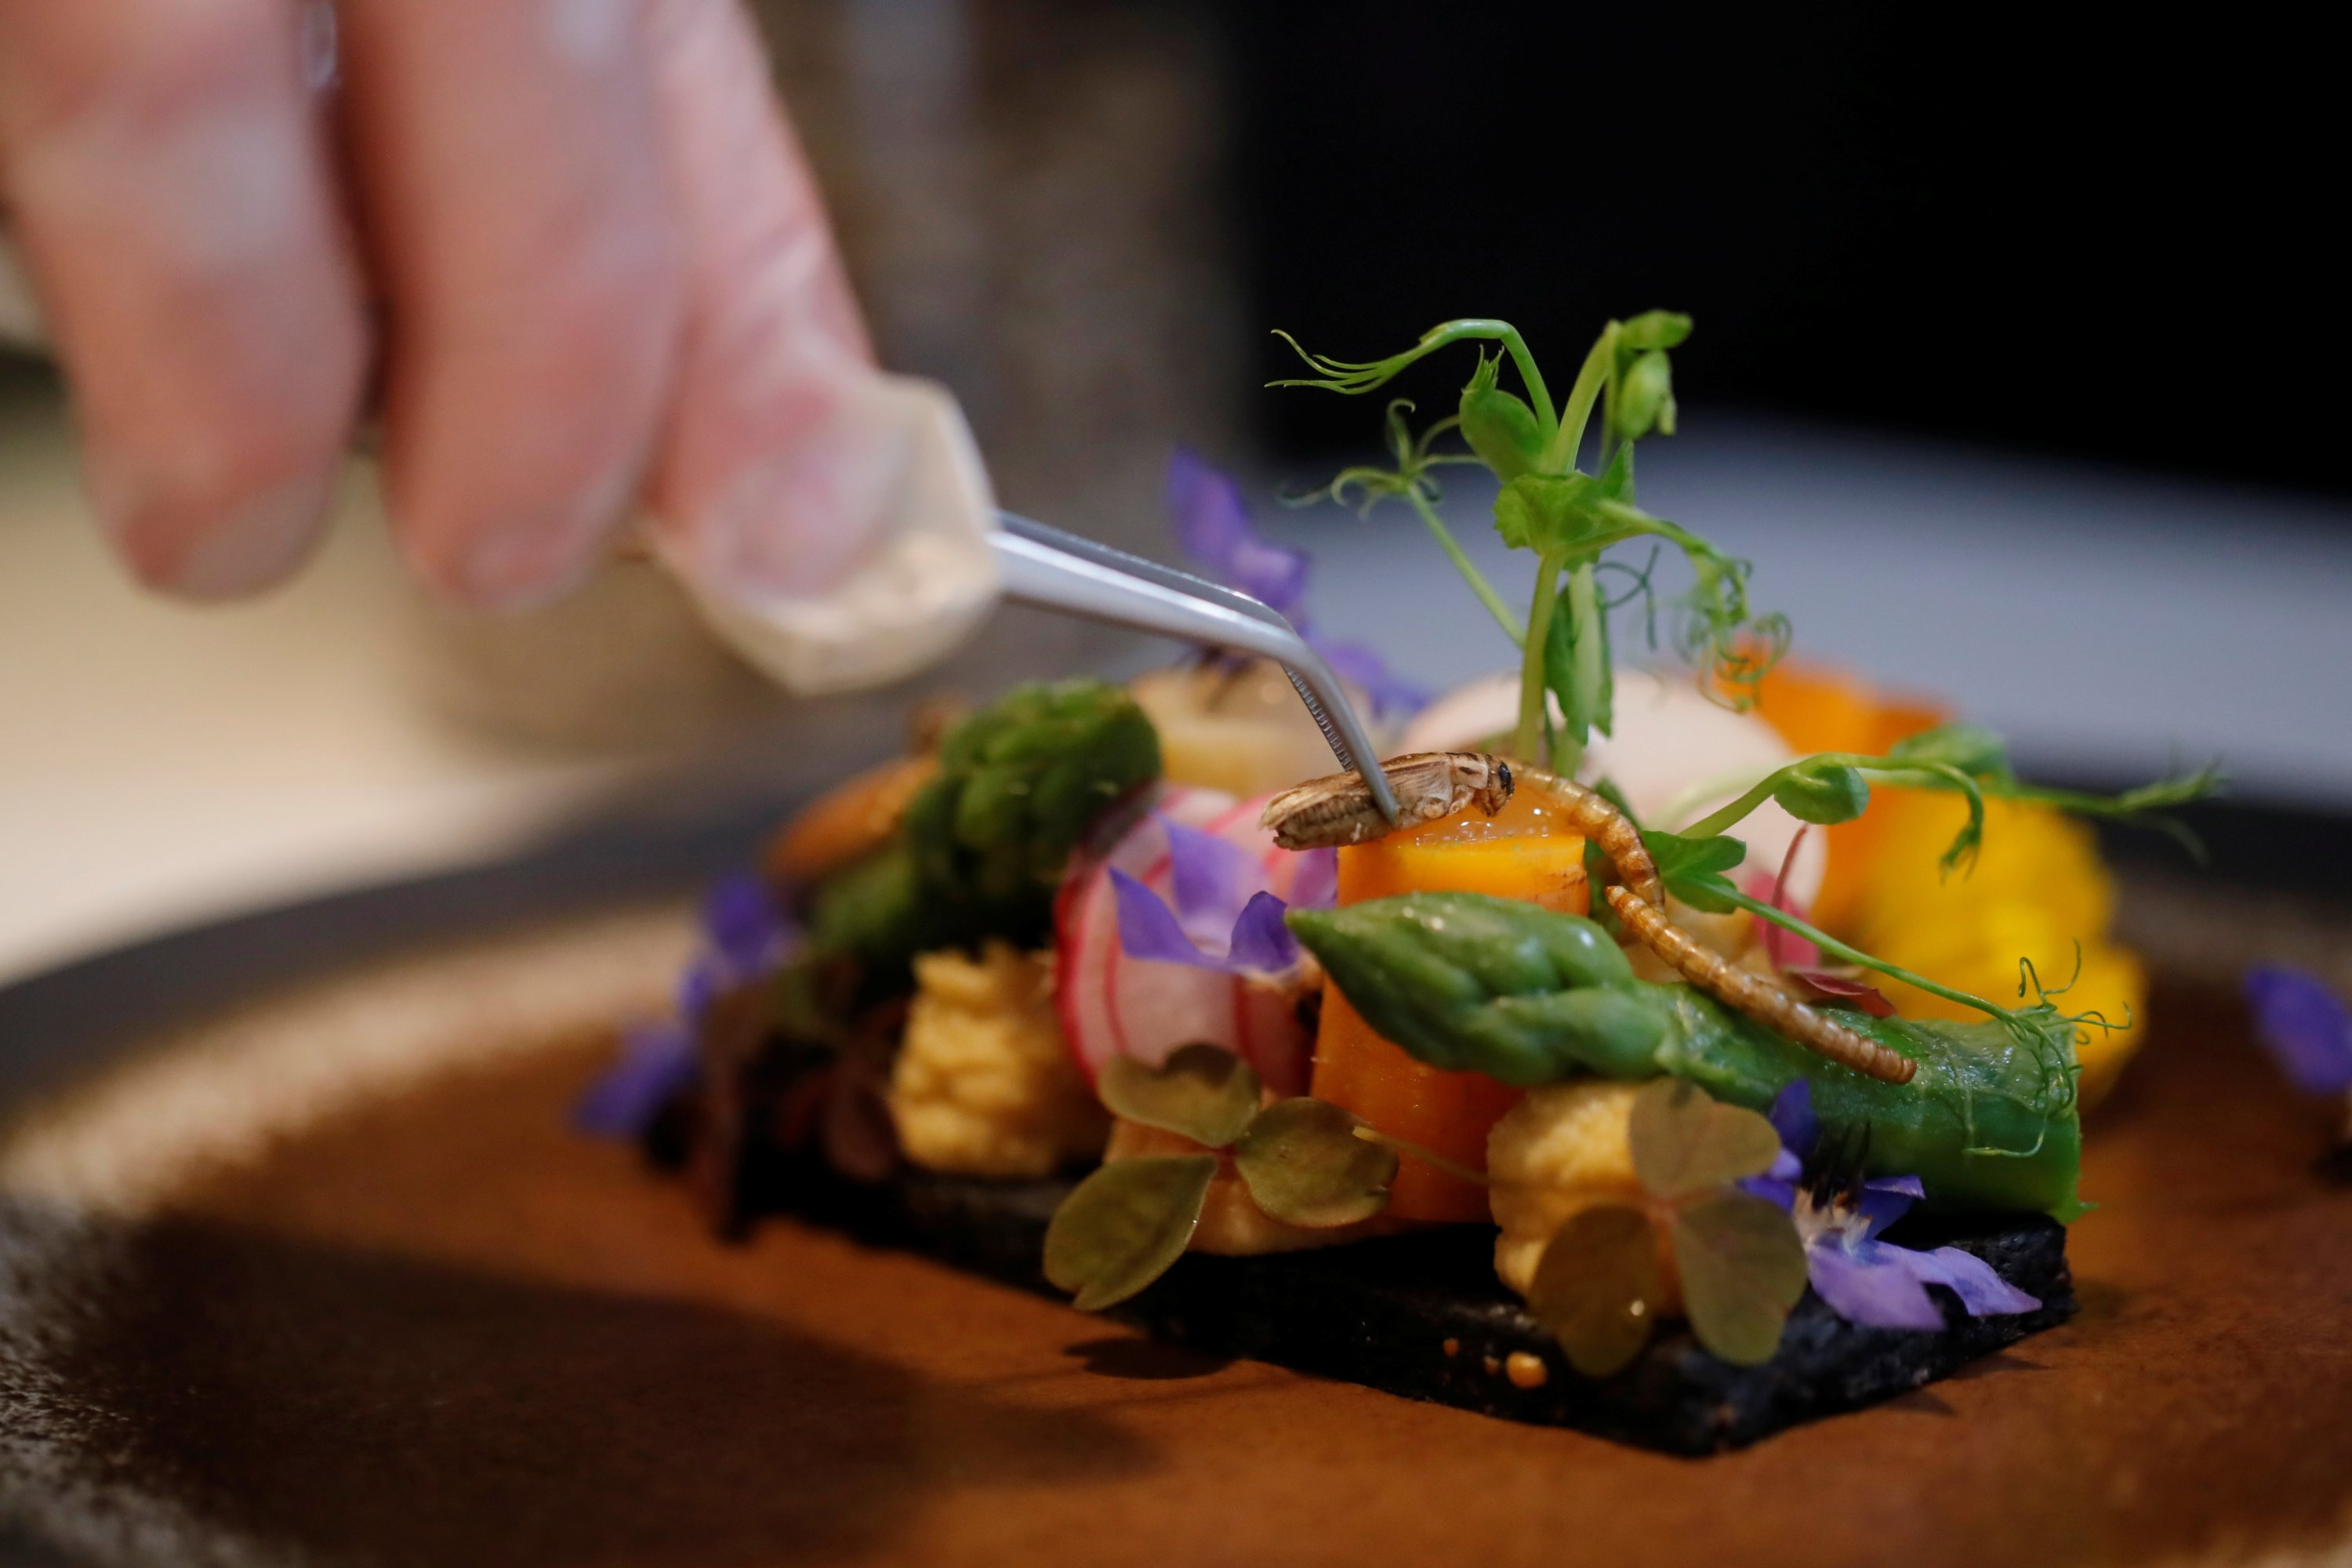 French chef Laurent Veyet puts a cricket on a dish in his restaurant Inoveat serving insect-based food in Paris, France, May 12, 2021. (Reuters Photo)